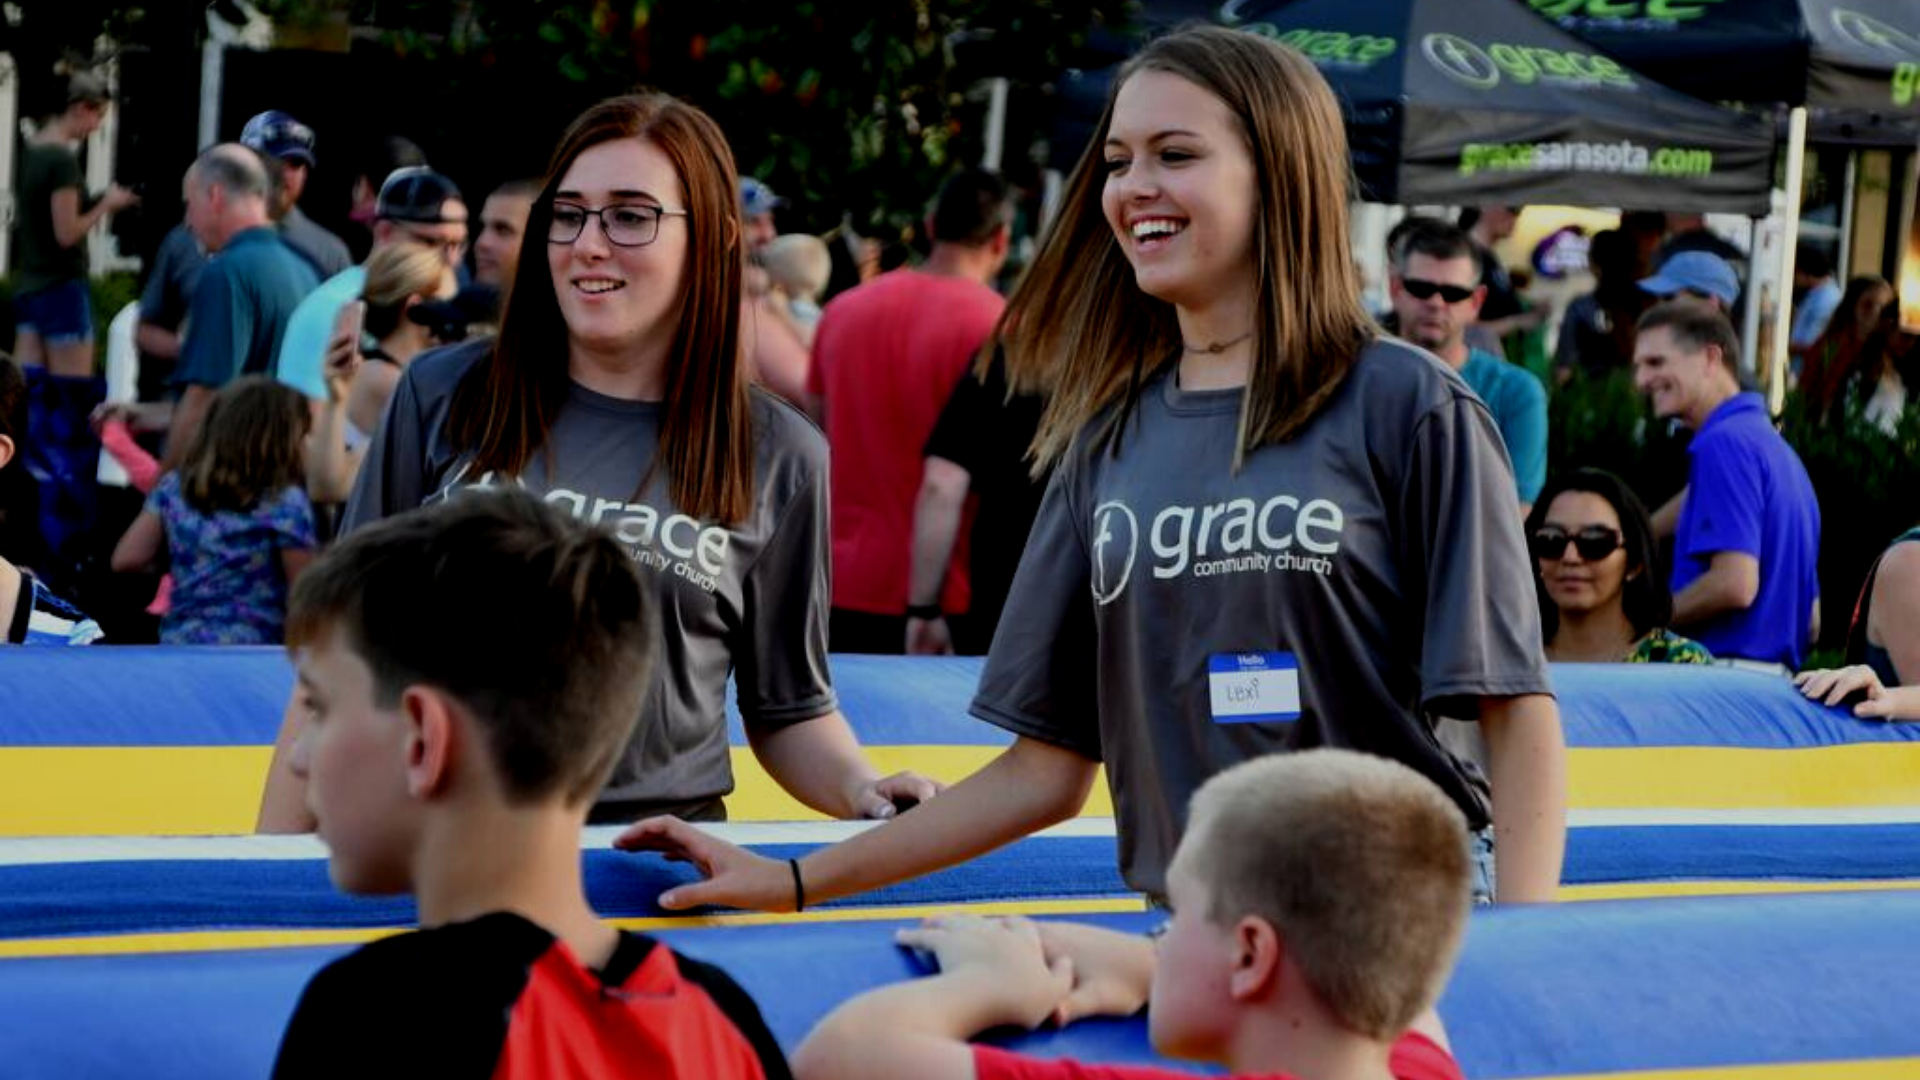 Apply Now! Director of Children's Ministry in Sarasota, Florida